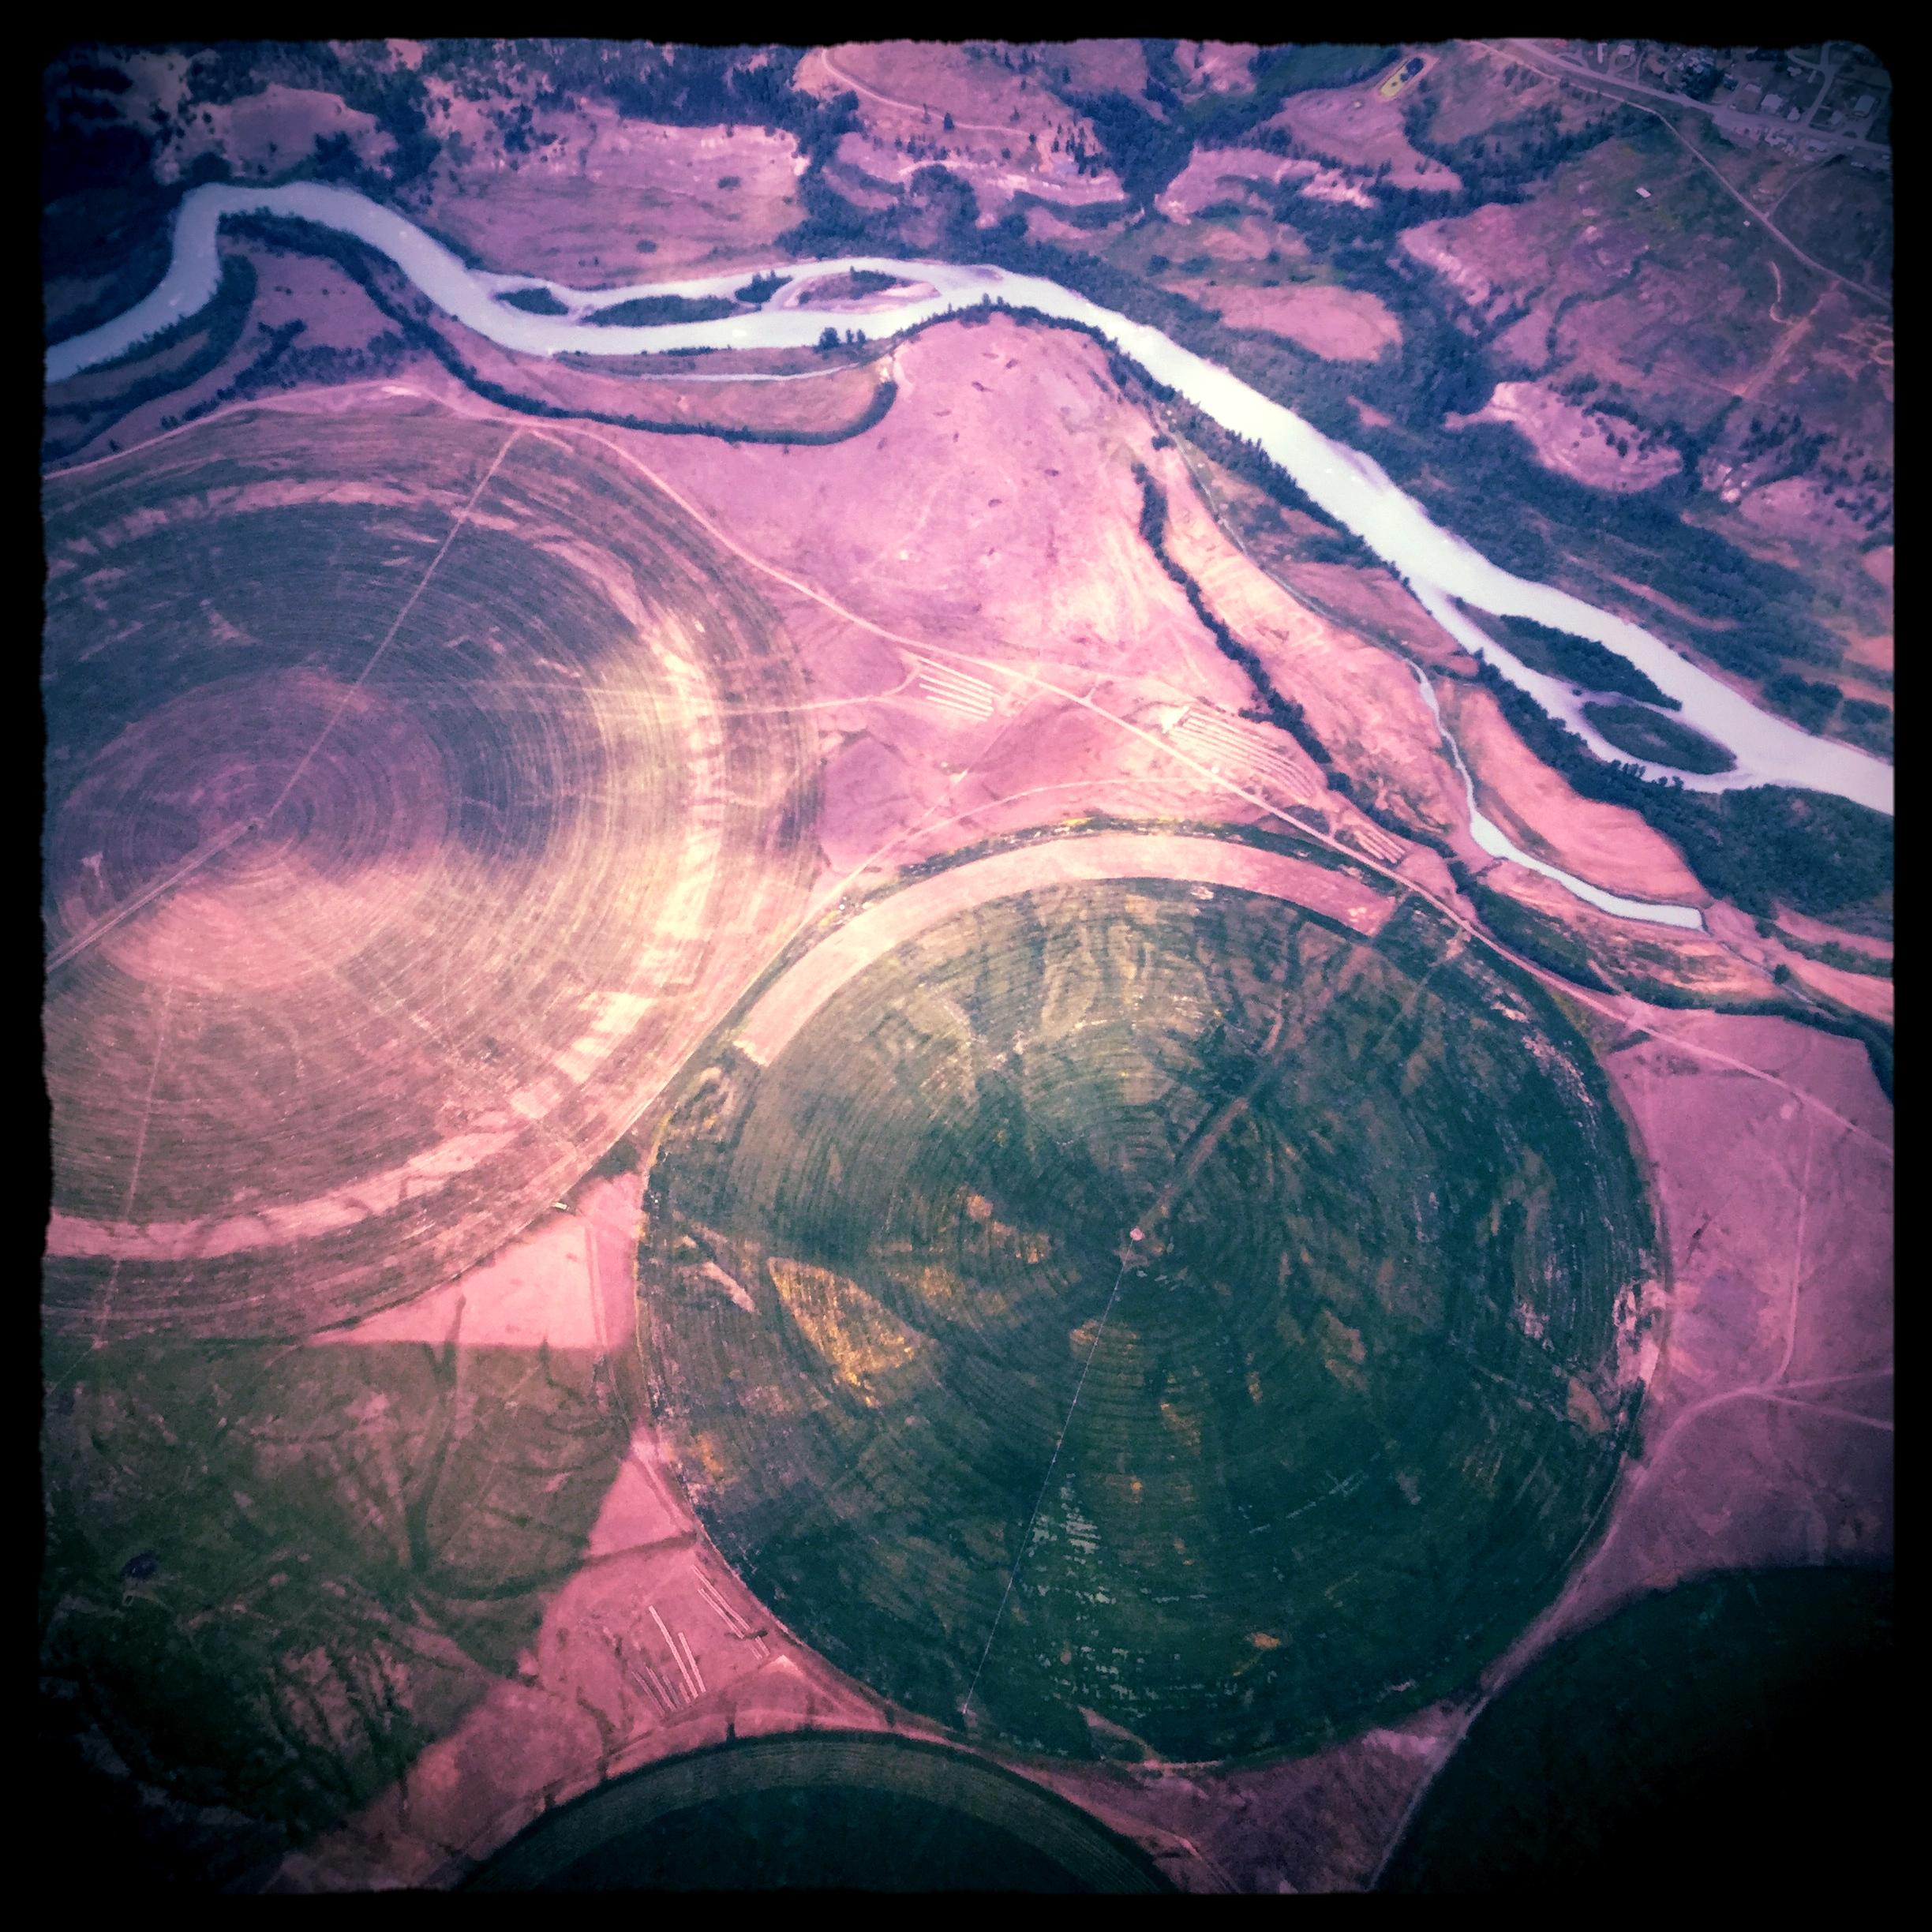 Fraser_River_and_British_Columbia_from_above